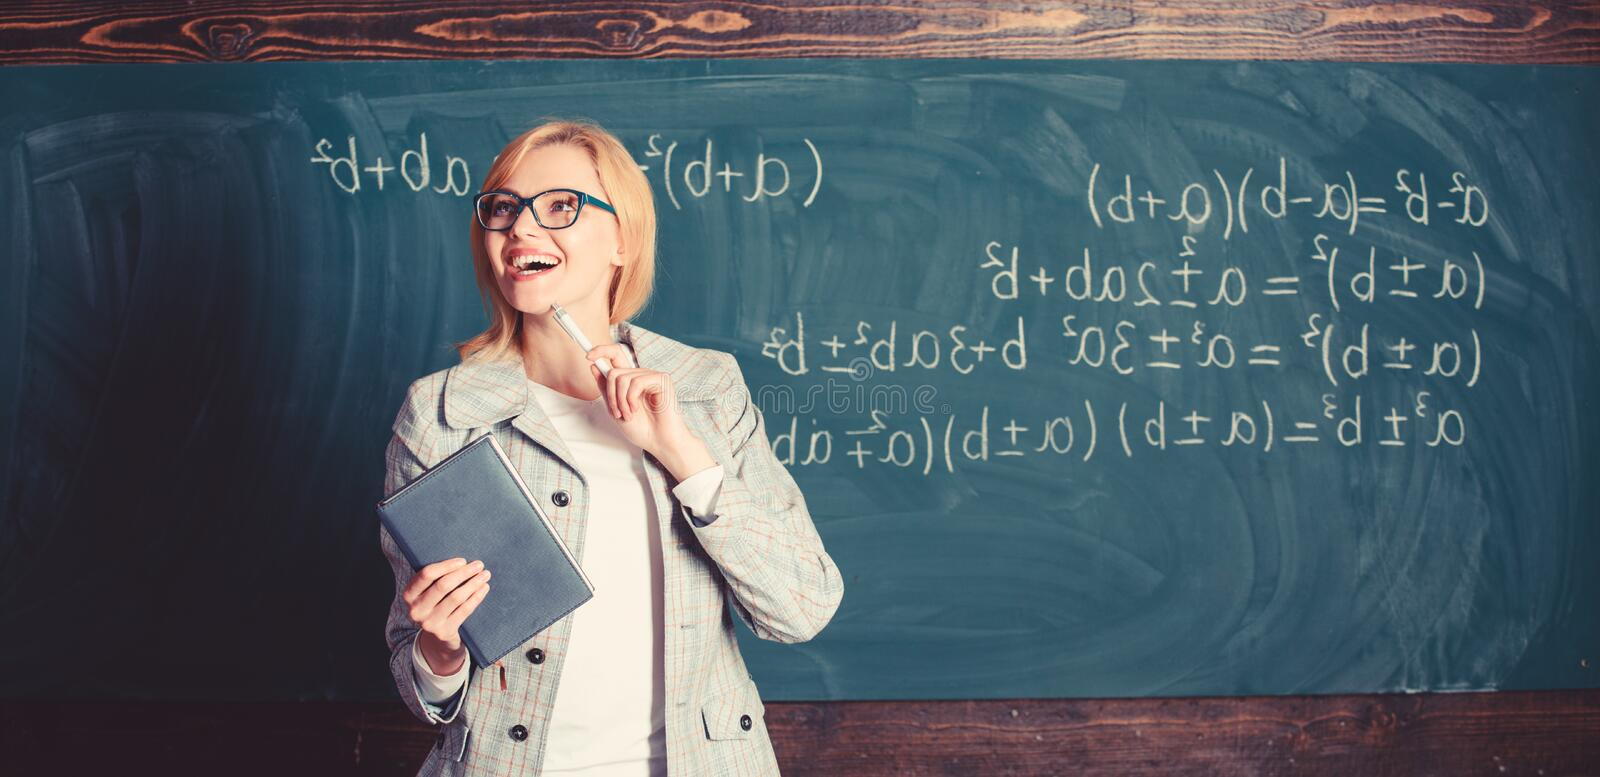 Teacher smart woman with book explain topic near chalkboard. What makes great teacher. School teacher explain things stock photos